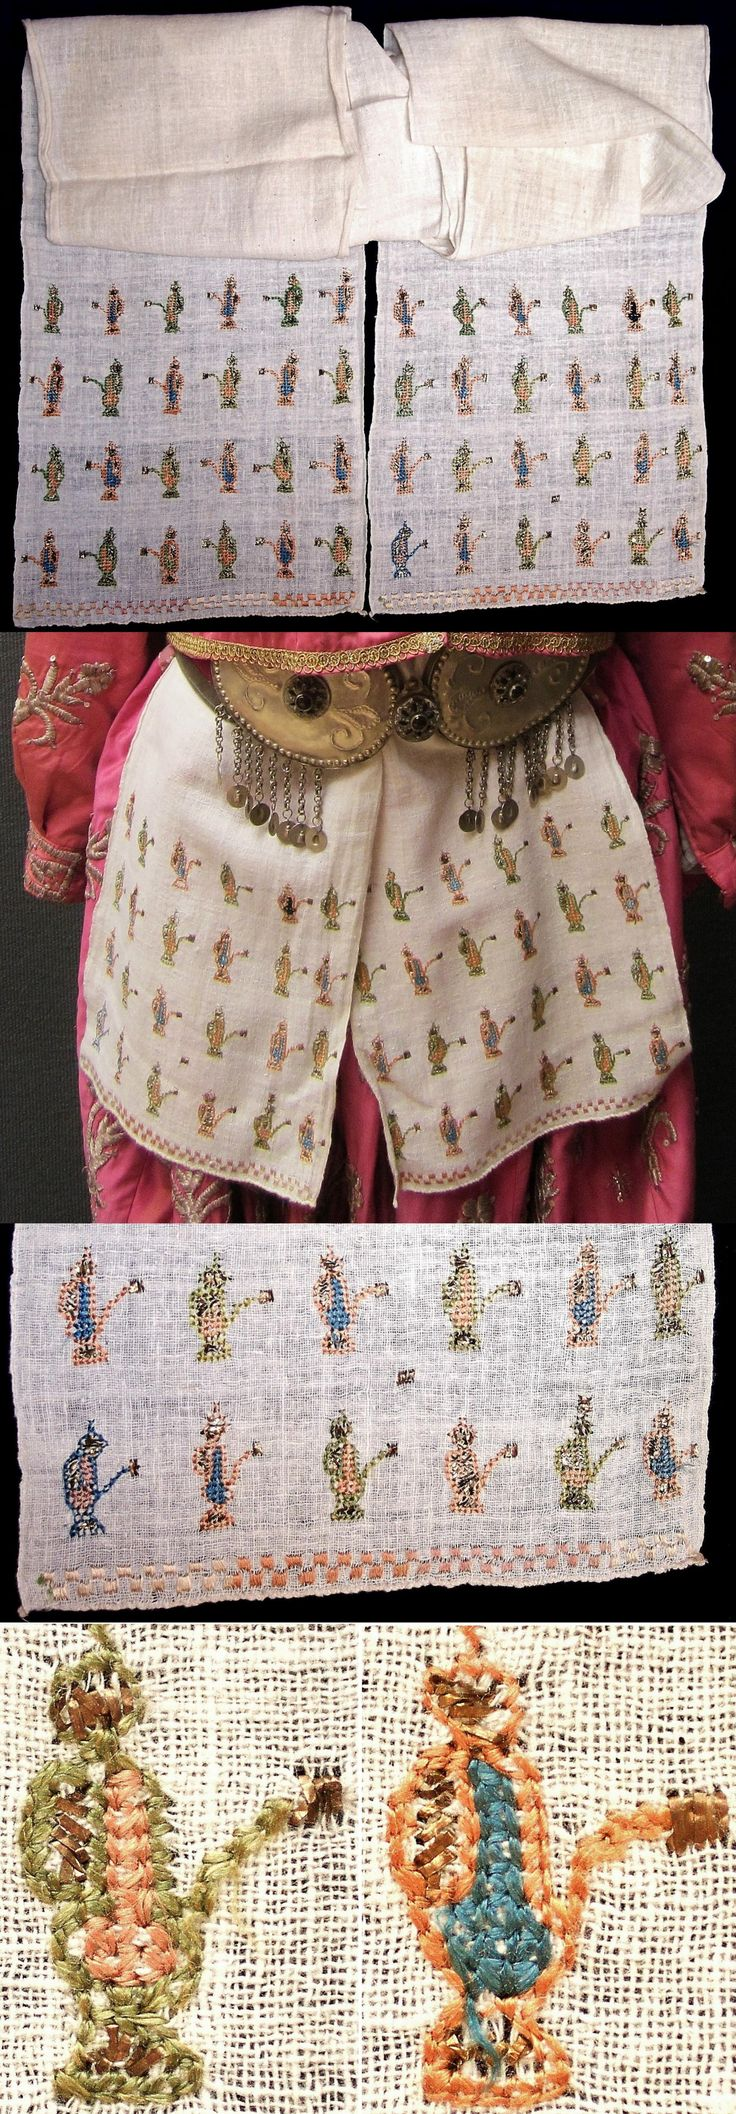 An 'uckur' (woman's waistband/sash) with embroidered ends.  From the Bursa region, early 20th c.  The embroidery is 'two-sided' (identical on both sides of the fabric) and is executed in both silk on linen and 'tel kırma' (motives obtained by sticking narrow metallic strips through the fabric and folding them). The motif used is an 'ibrik' (water pitcher). (Inv.nr. brdw039 - Kavak Costume Collection - Antwerpen/Belgium).